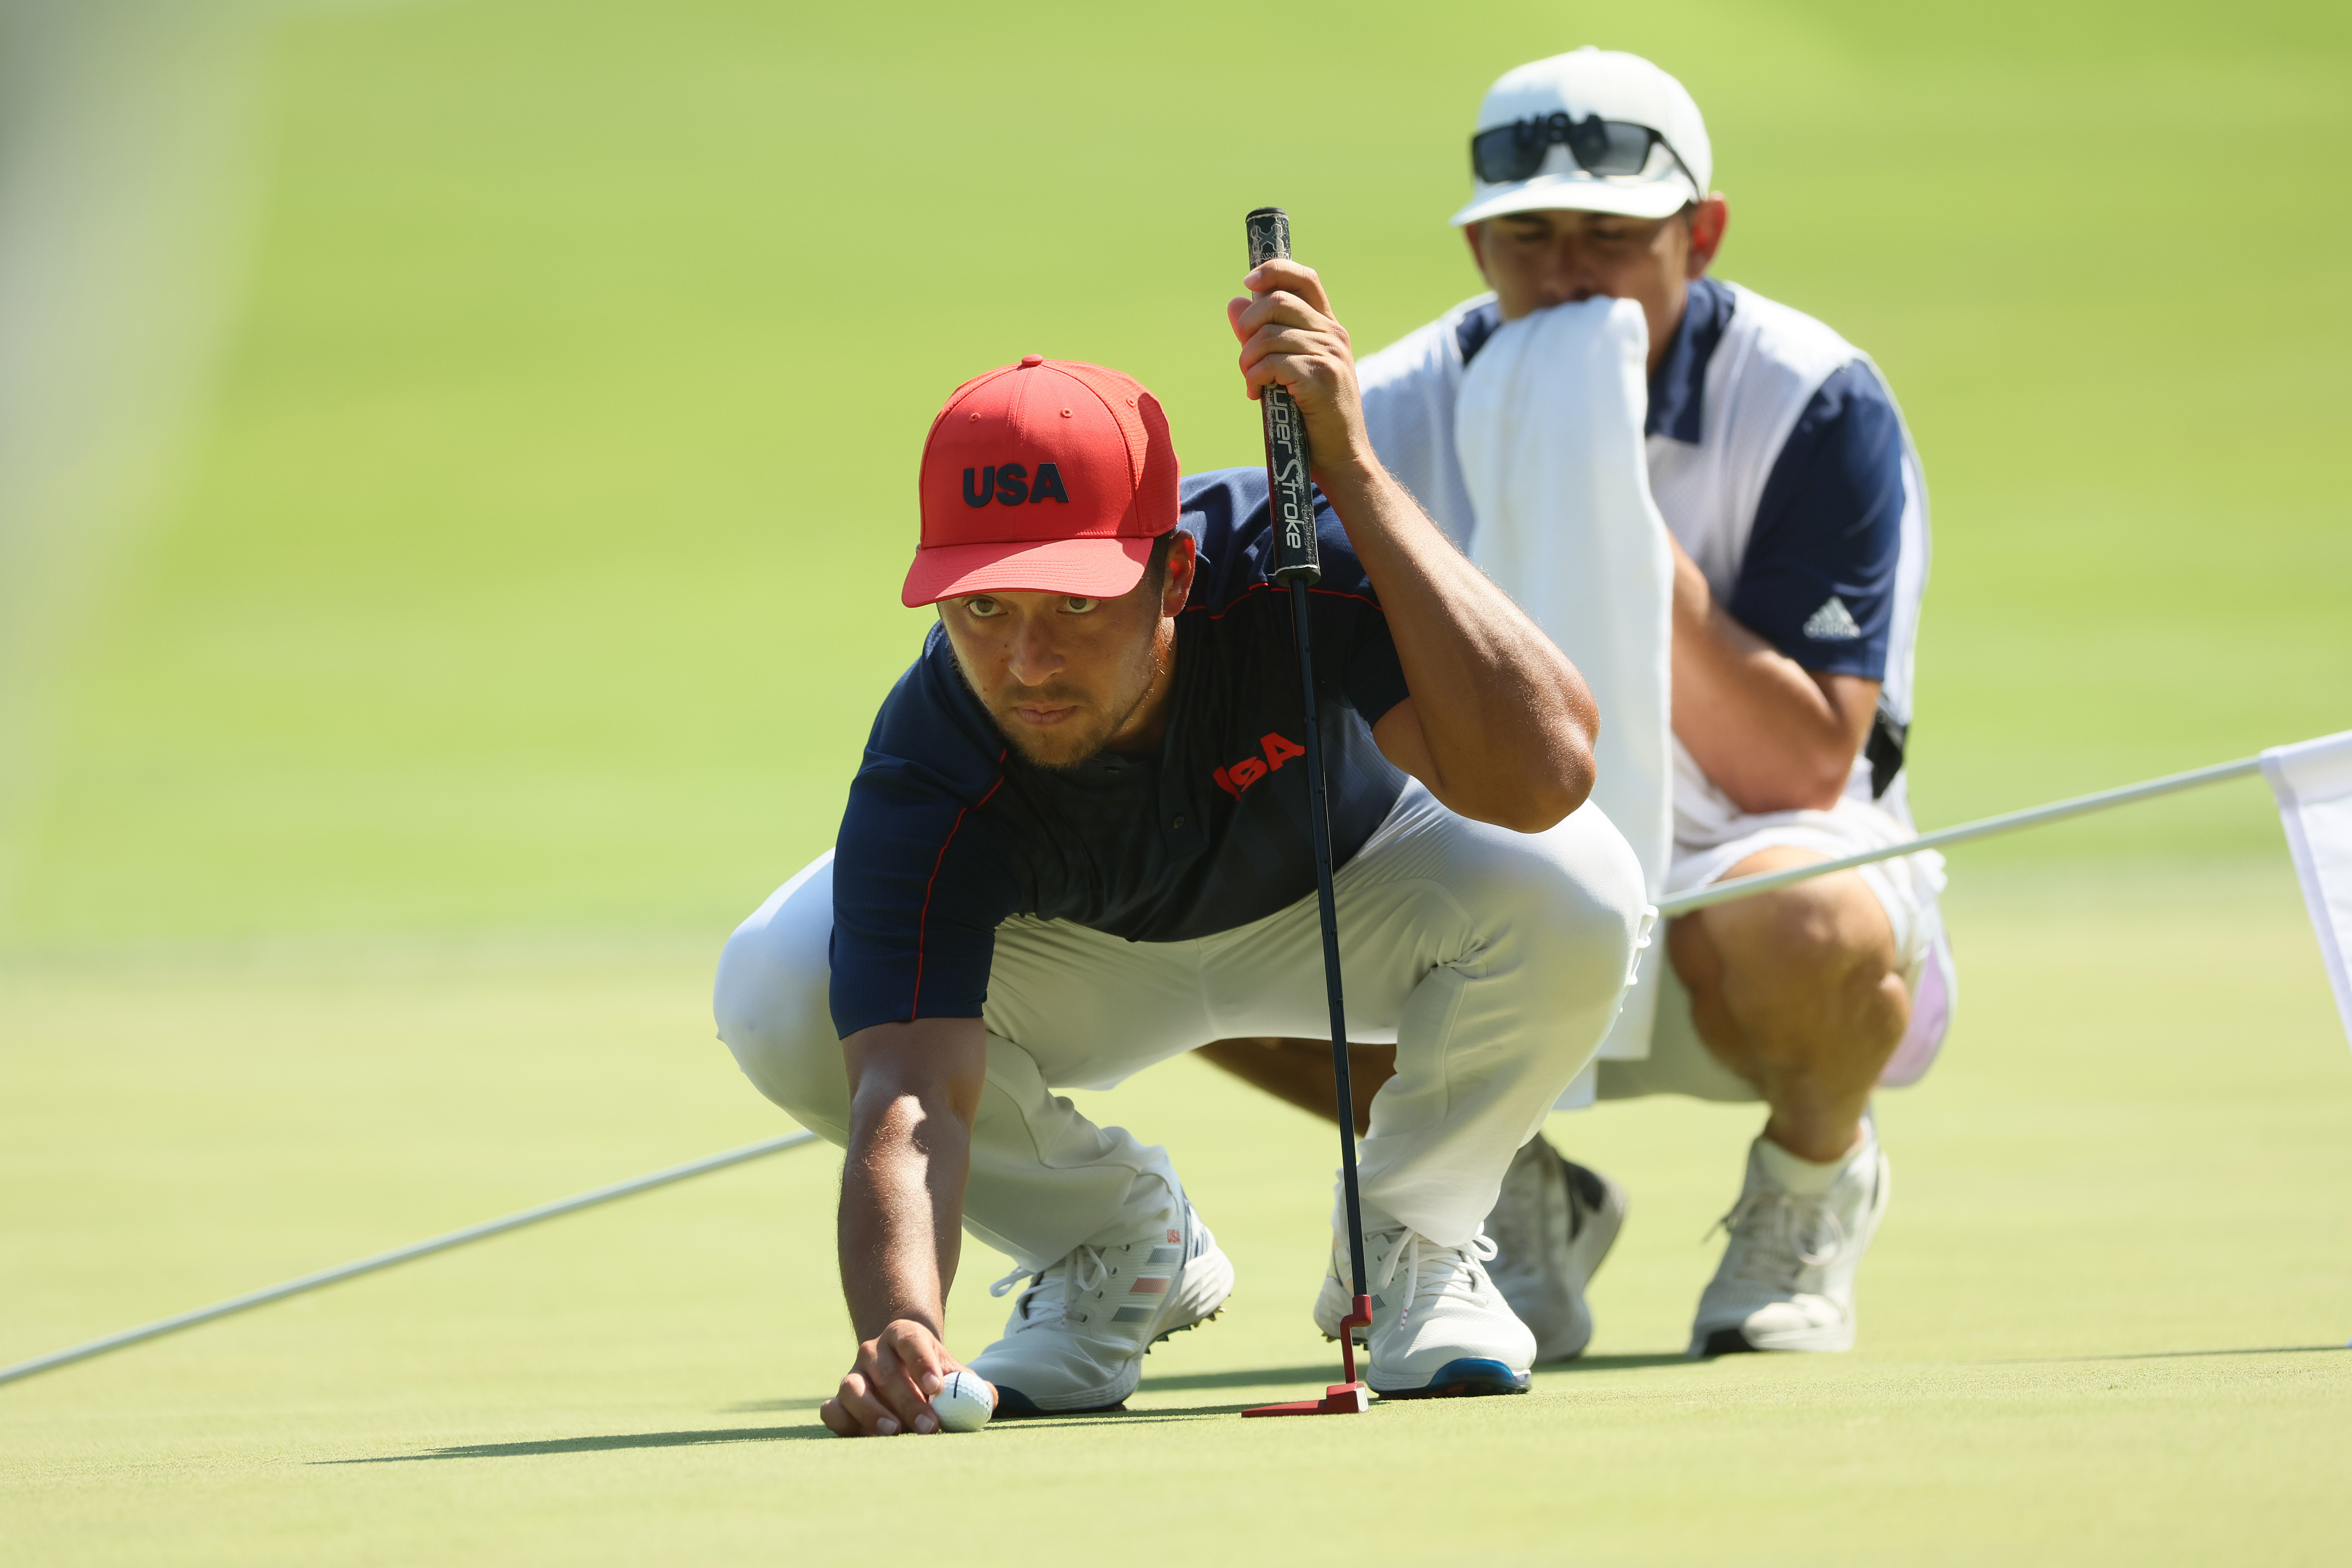 Xander Schauffele of Team United States prepares to putt on the 13th green as caddie Austin Kaiser looks on during the final round of the Men's Individual Stroke Play on day nine of the Tokyo 2020 Olympic Games at Kasumigaseki Country Club on August 01, 2021 in Kawagoe, Saitama, Japan.